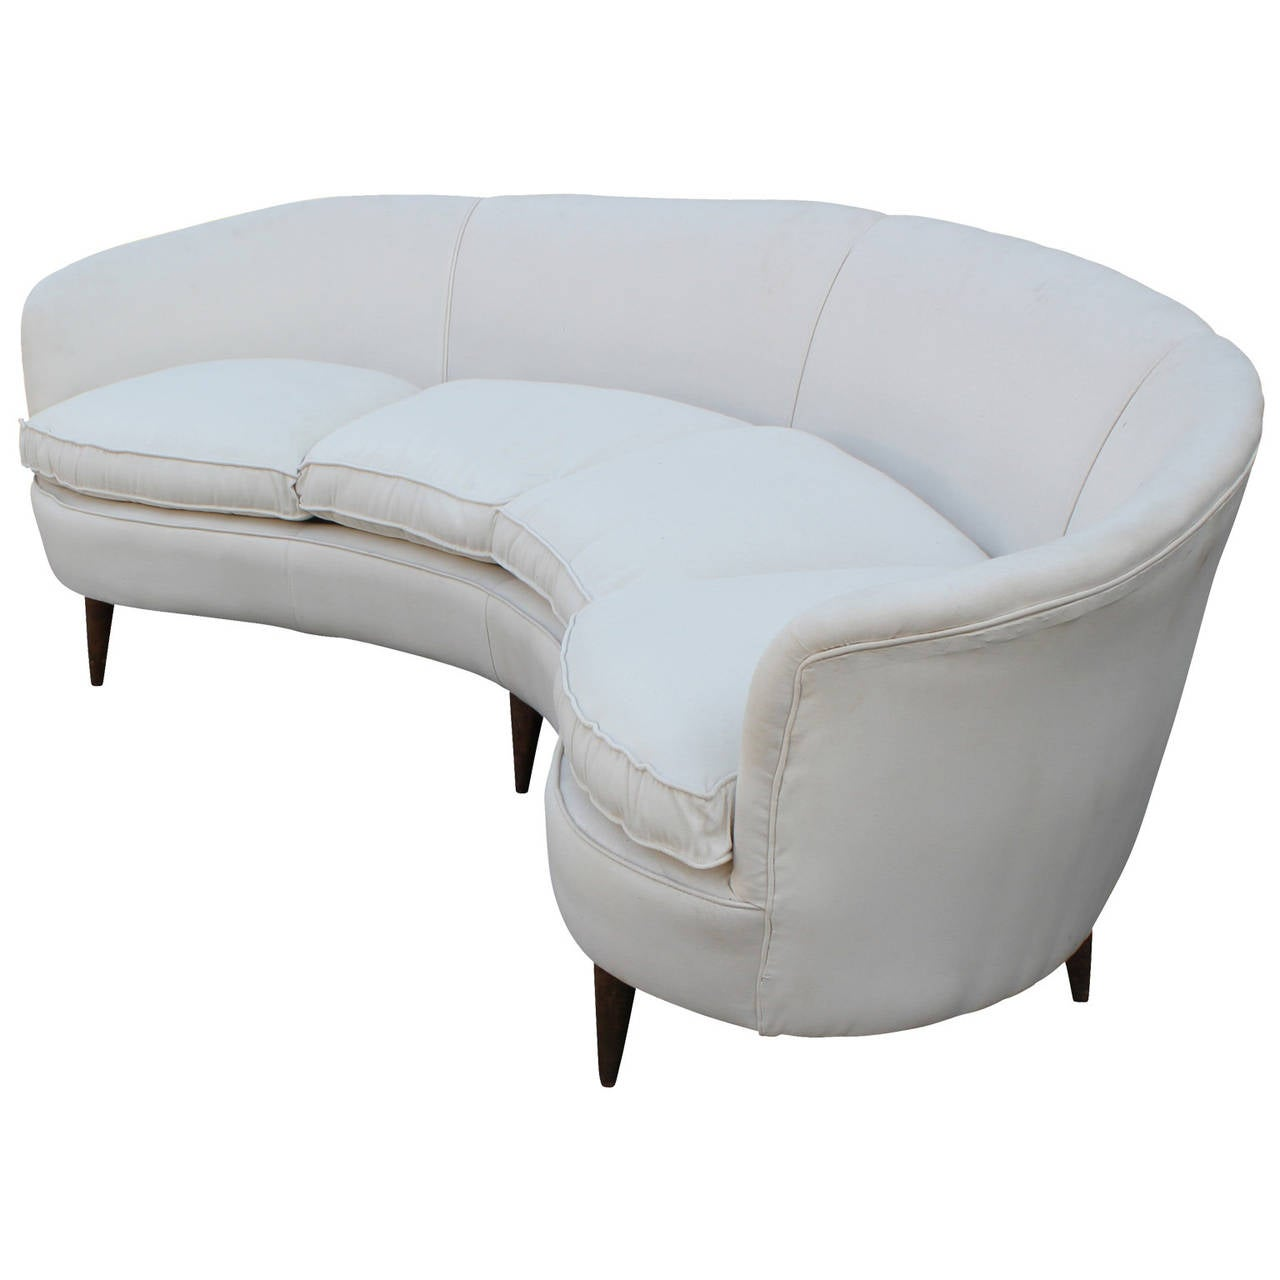 Curved white italian sofa at 1stdibs Curved loveseat sofa